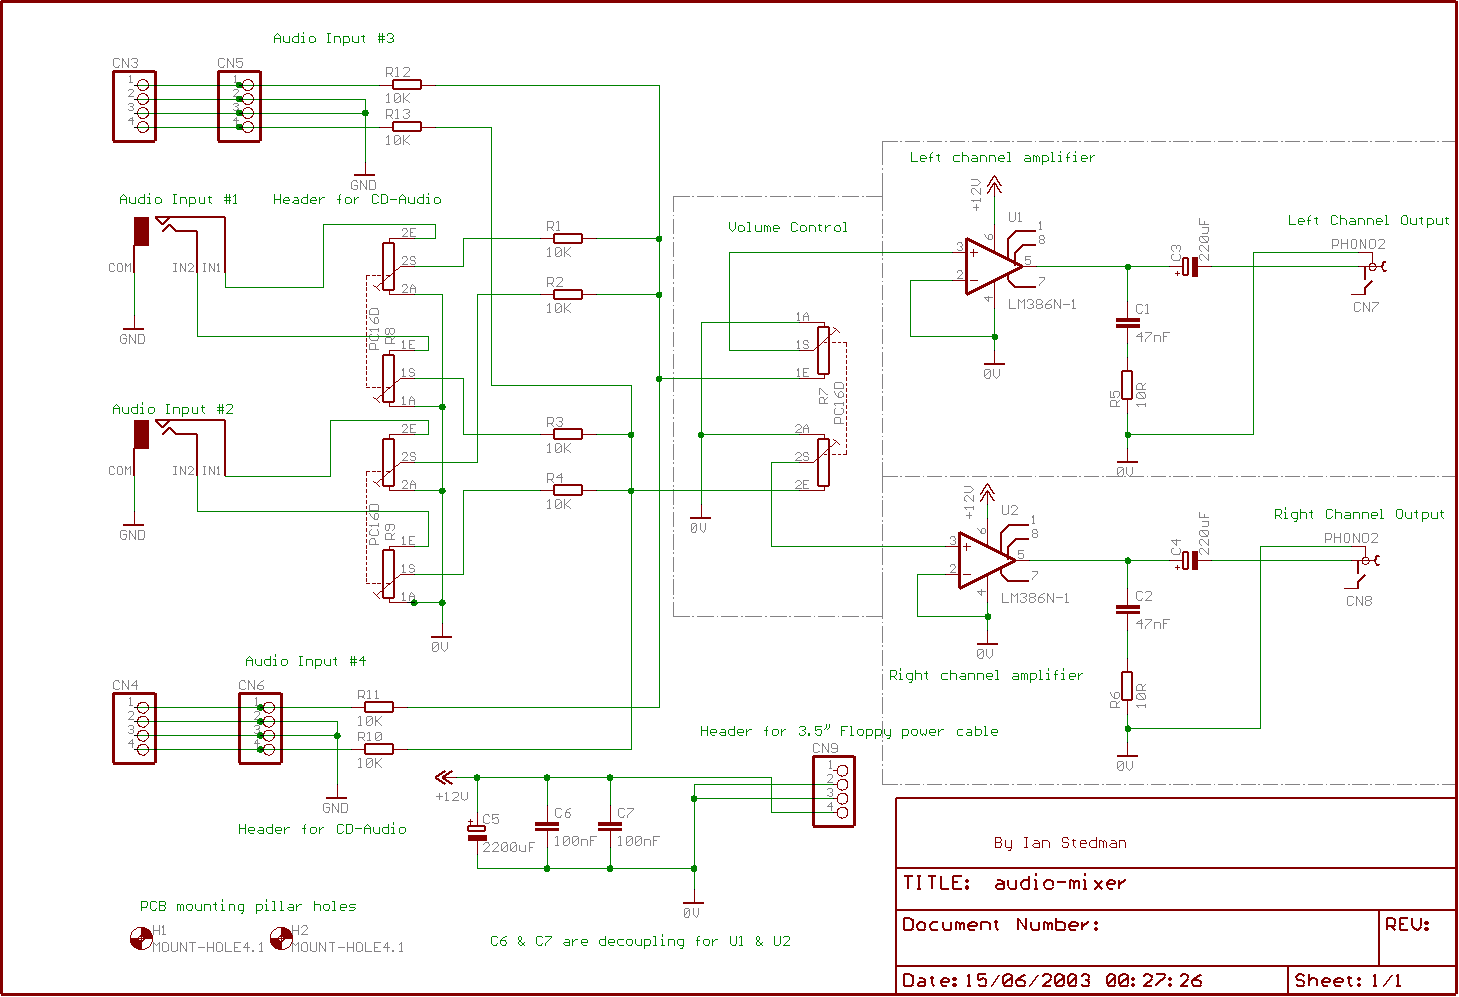 Audio Mixer Circuit Page 4 Circuits Simple Sound Effects Electronic Projects Schematic